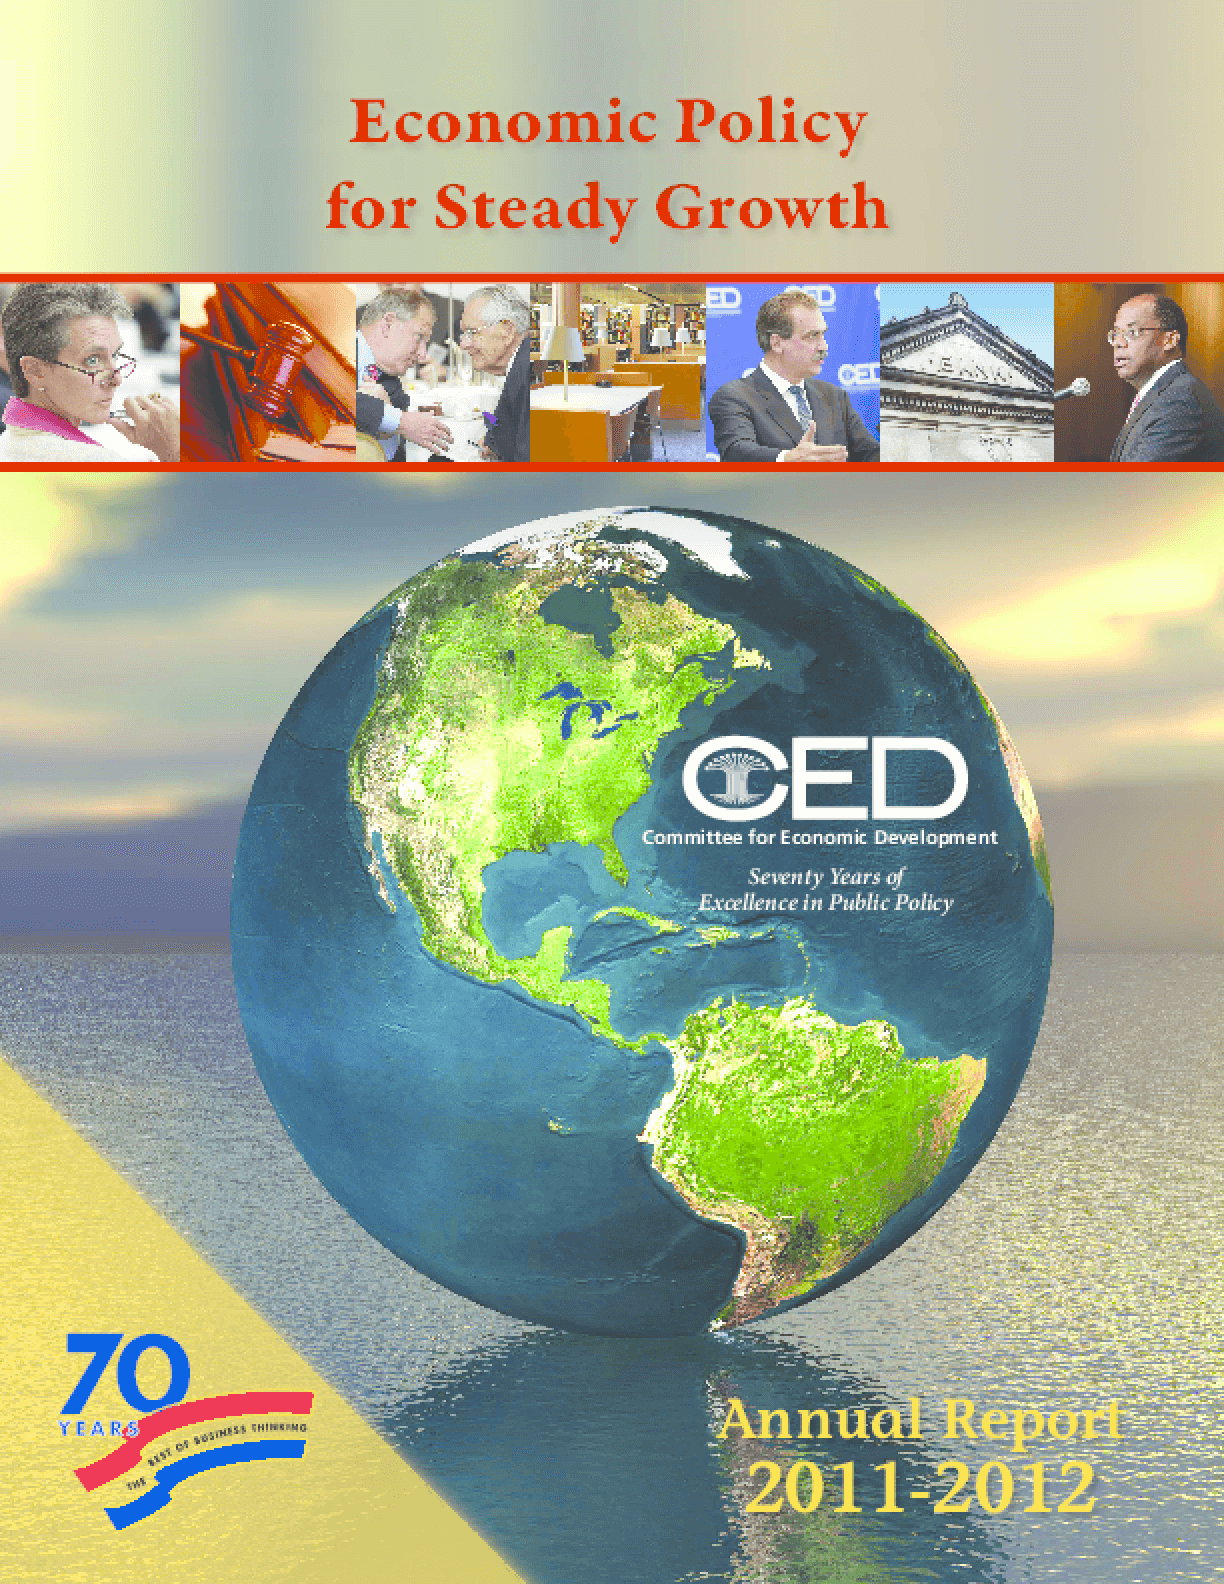 CED's 2011-2012 Annual Report